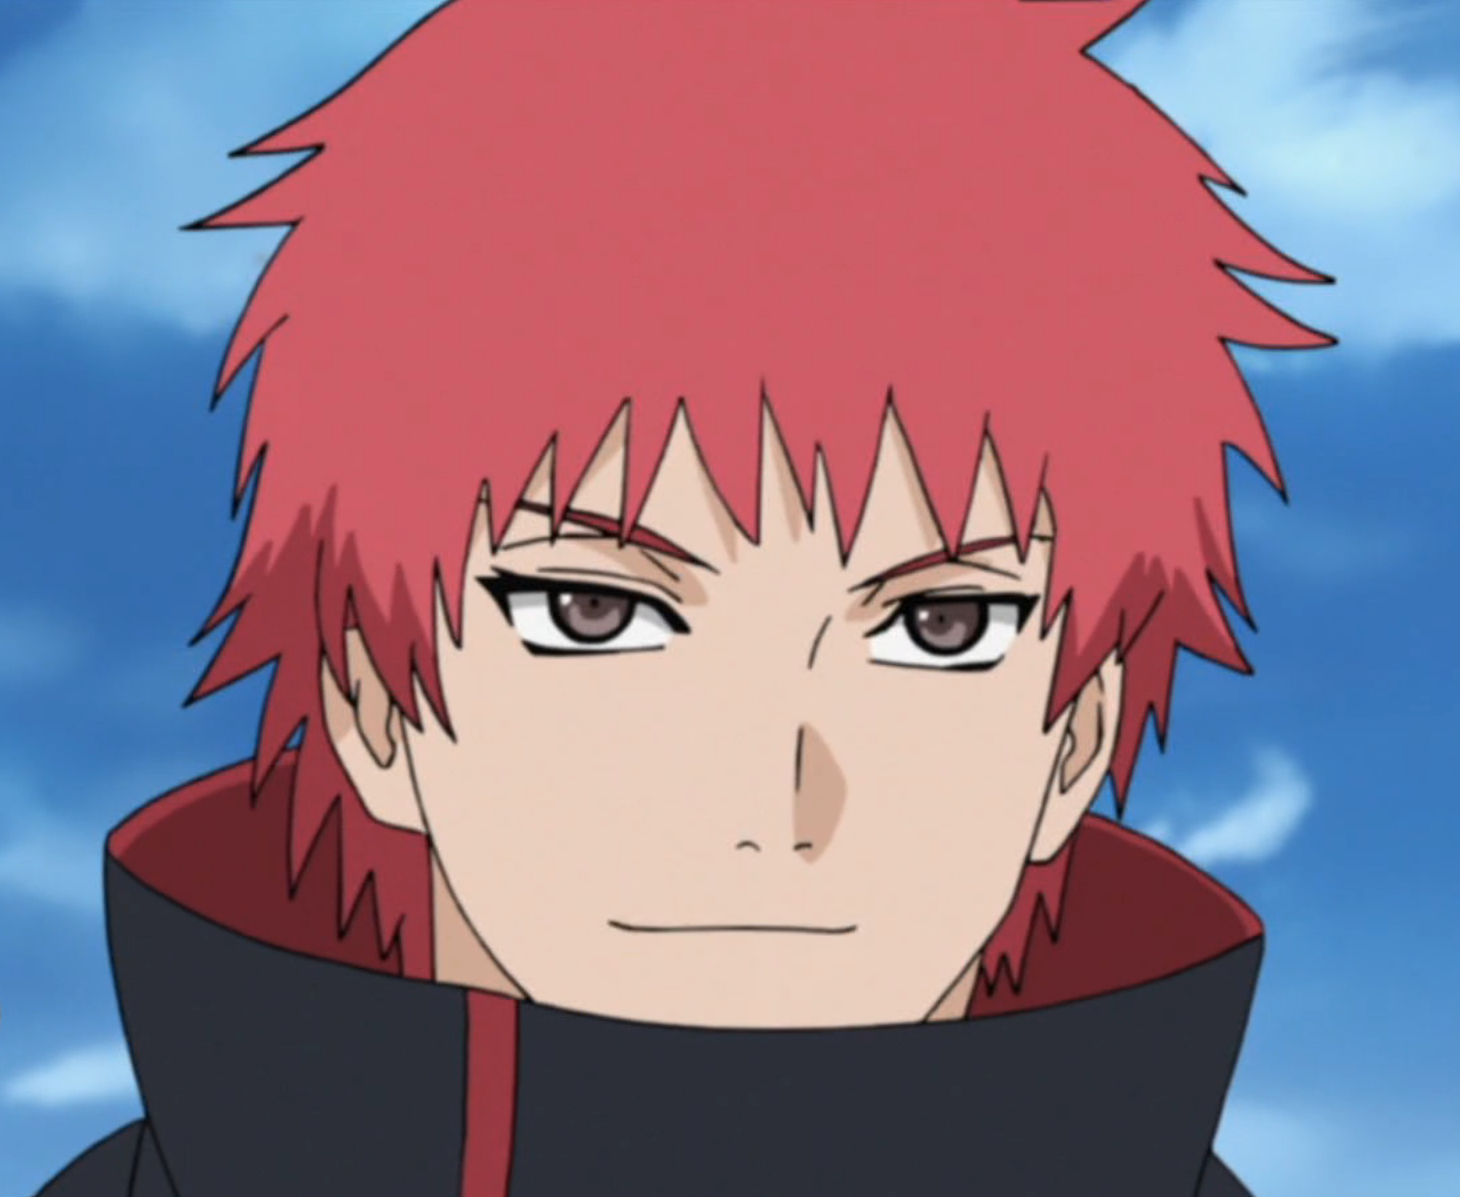 Sasori narutopedia fandom powered by wikia - Sasori akatsuki ...